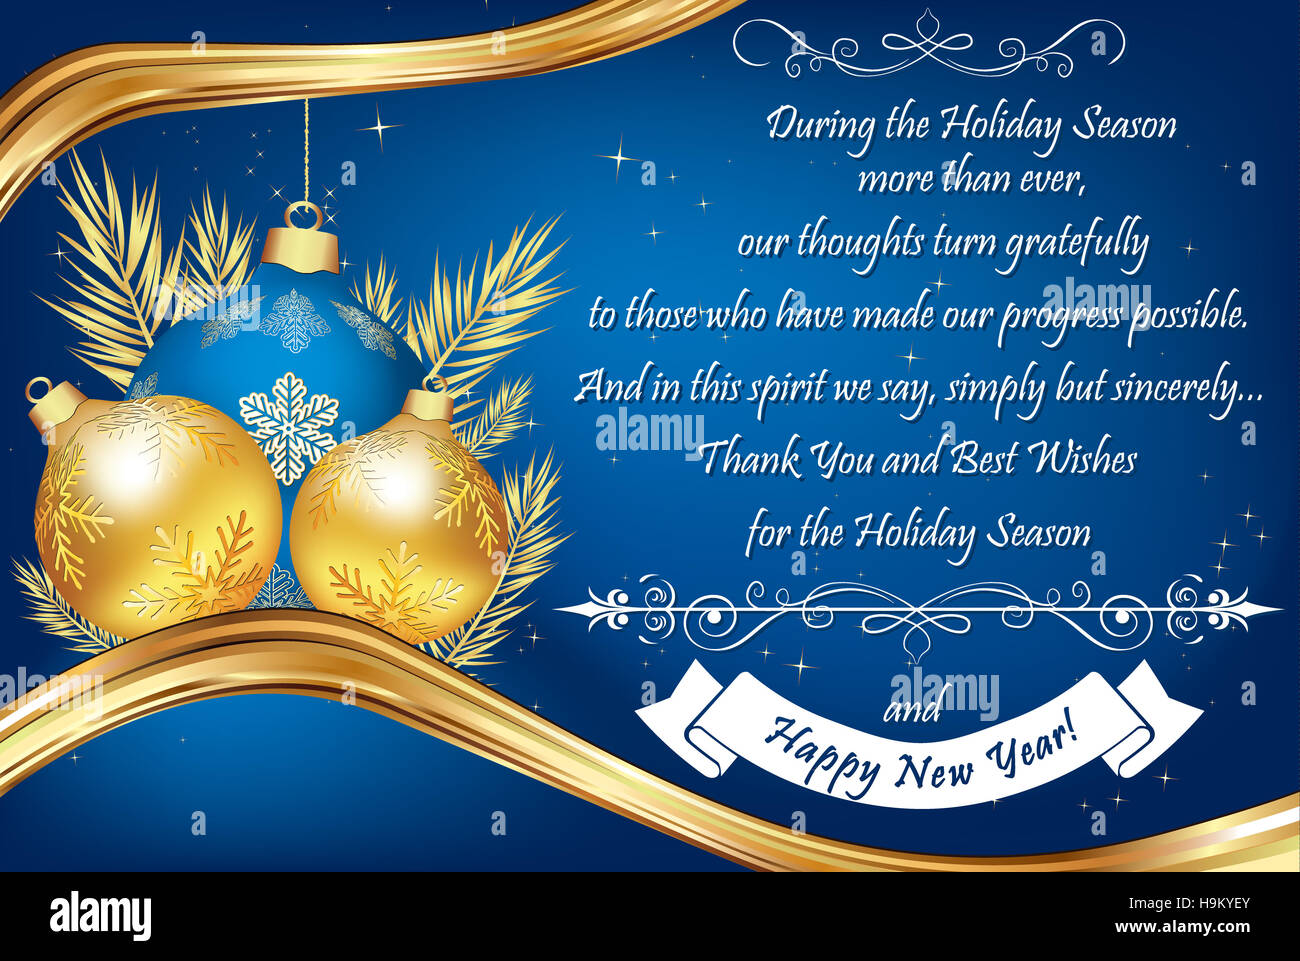 Thank You Blue Business Greeting Card For The End Of The Year Stock